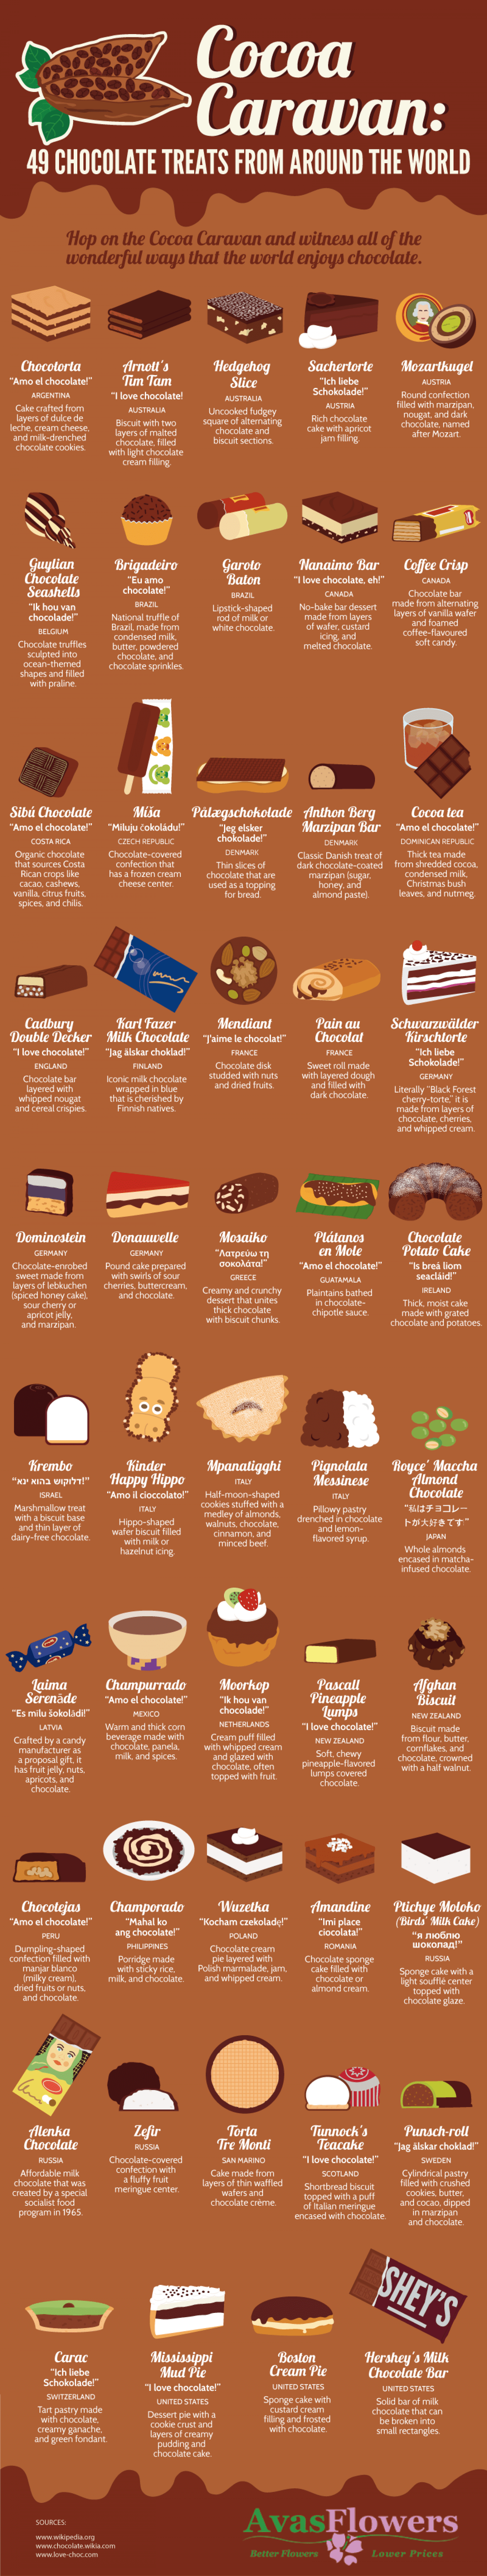 cocoa-caravan-49-chocolate-treats-from-around-the-world_560976aa2ba51_w1500.png